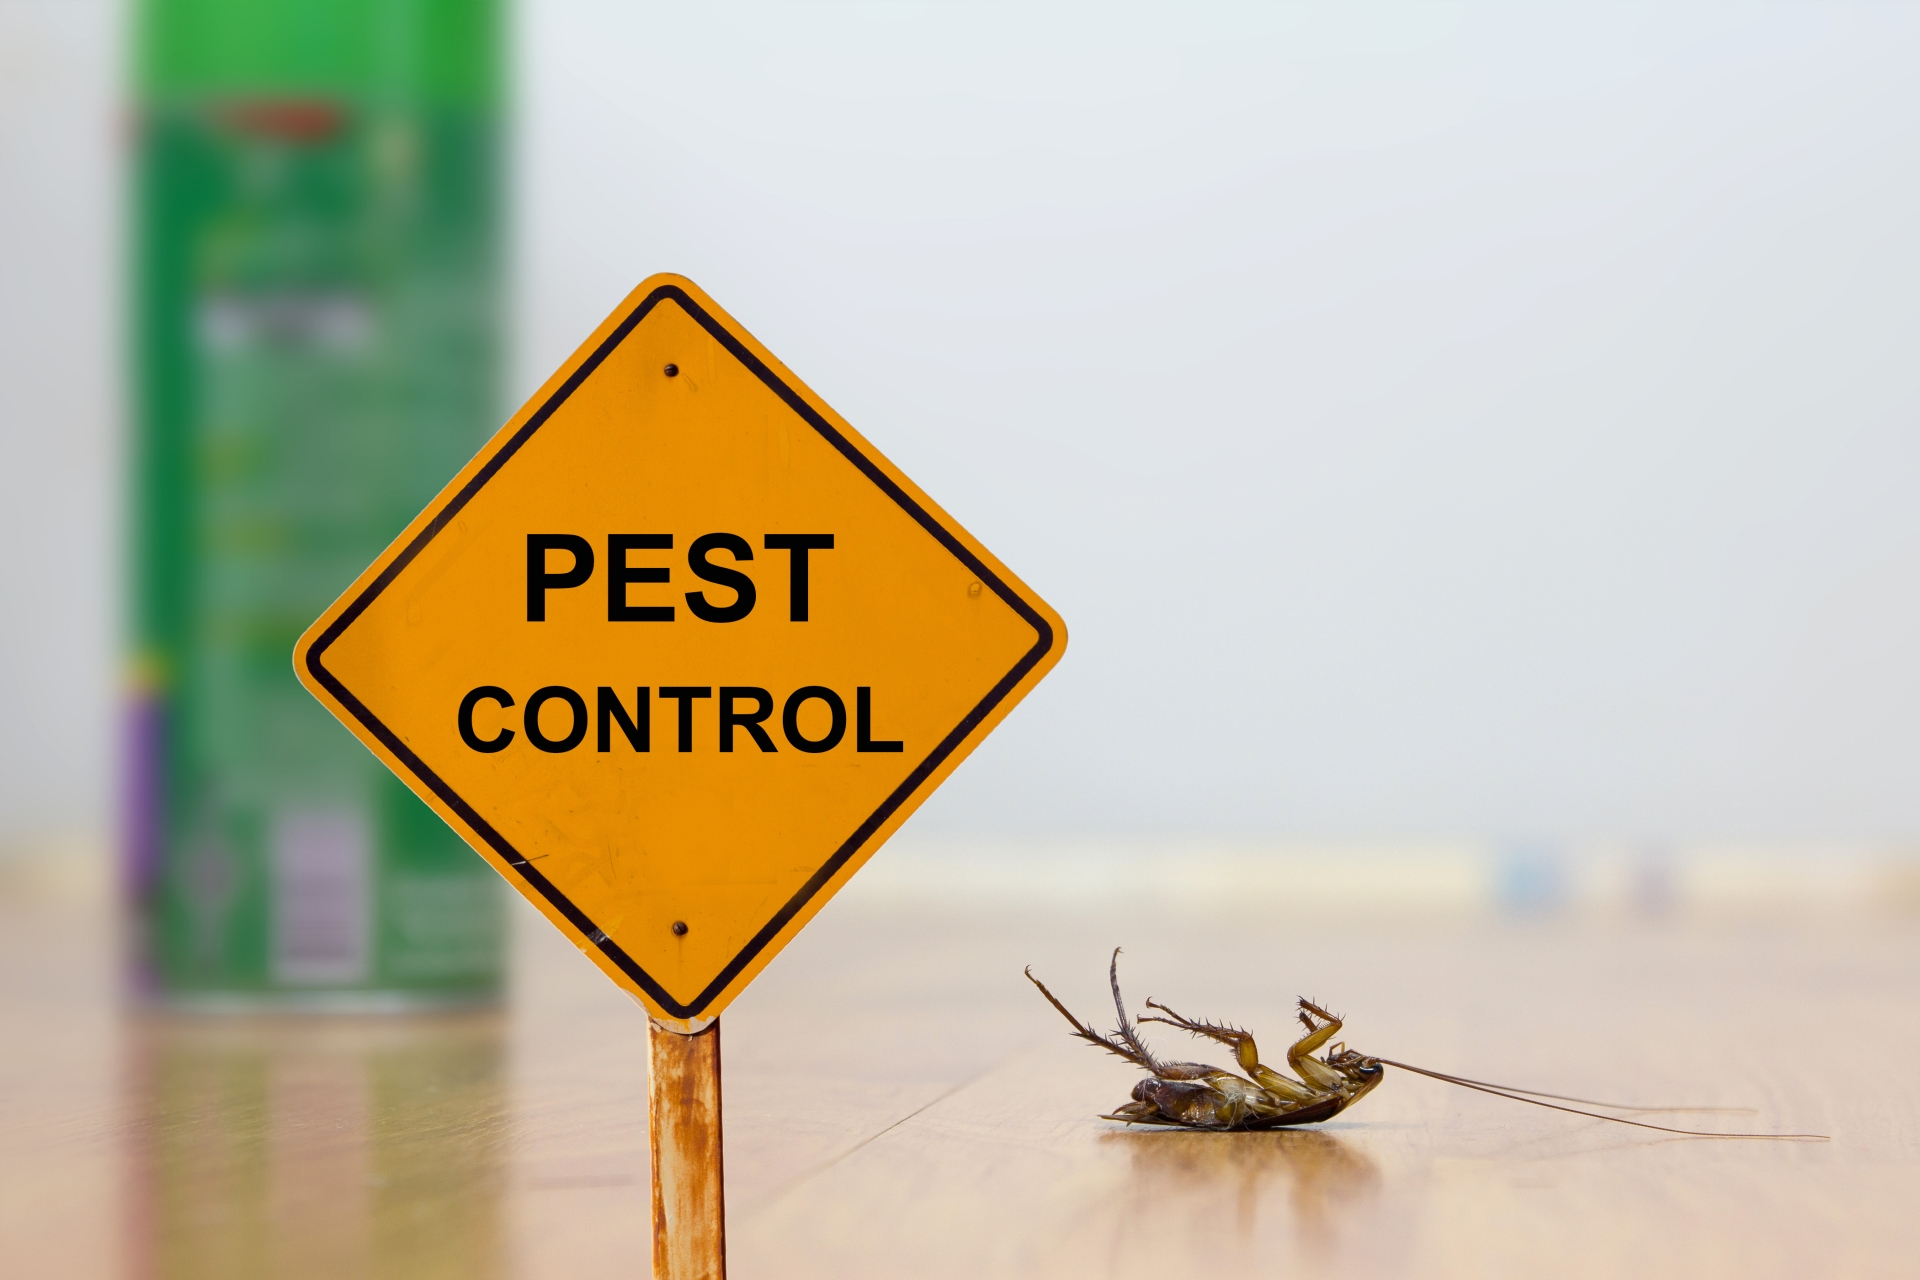 24 Hour Pest Control, Pest Control in Crystal Palace, Upper Norwood, SE19. Call Now 020 8166 9746